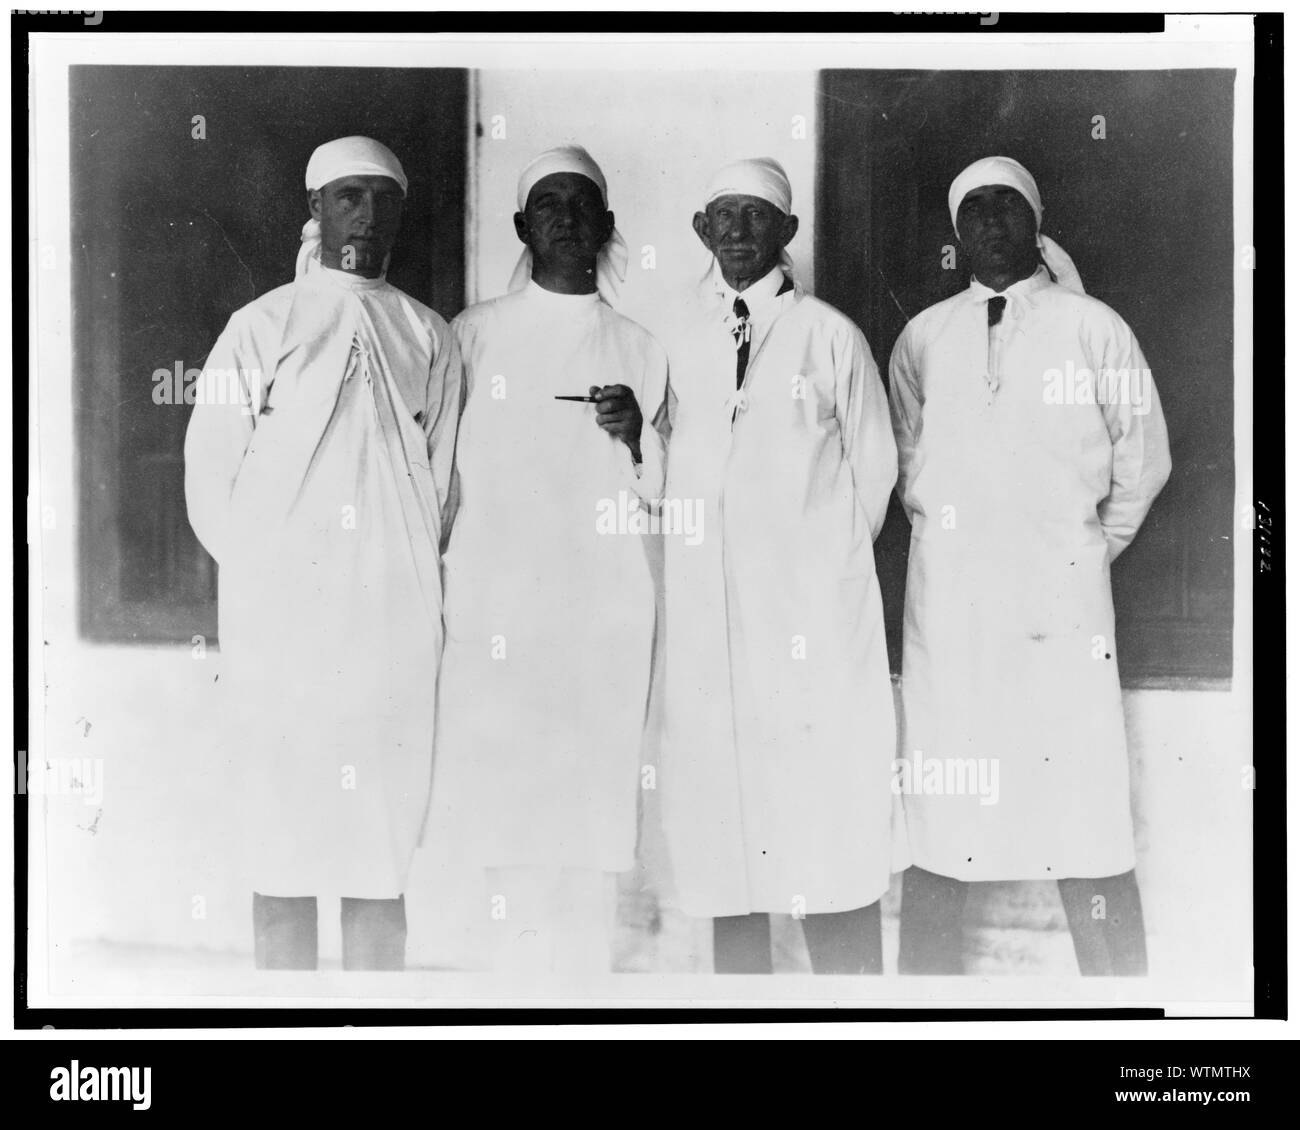 Mr Carpenter Dons A Typhus Uniform And Goes Through A Near East Relief Camp For Greek Refugees From Asia Minor Frank Carpenter Standing With Three Other Men All Wearing White Robes And